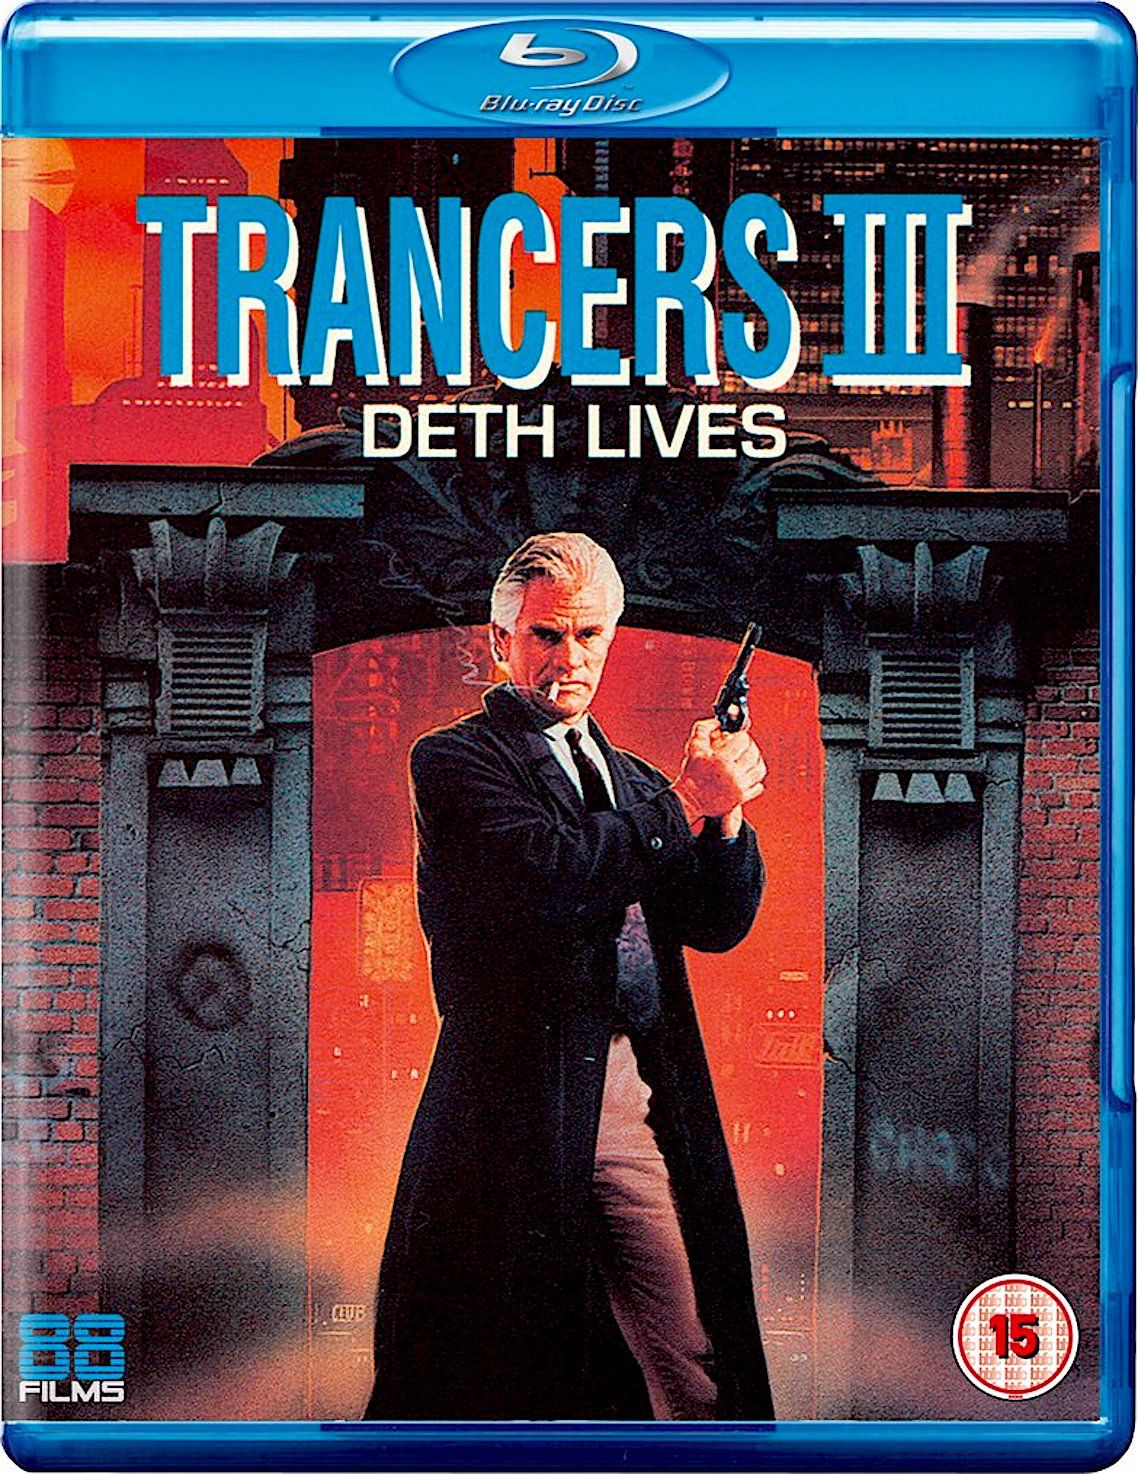 TRANCERS III DETH LIVES BLURAY Classic horror movies